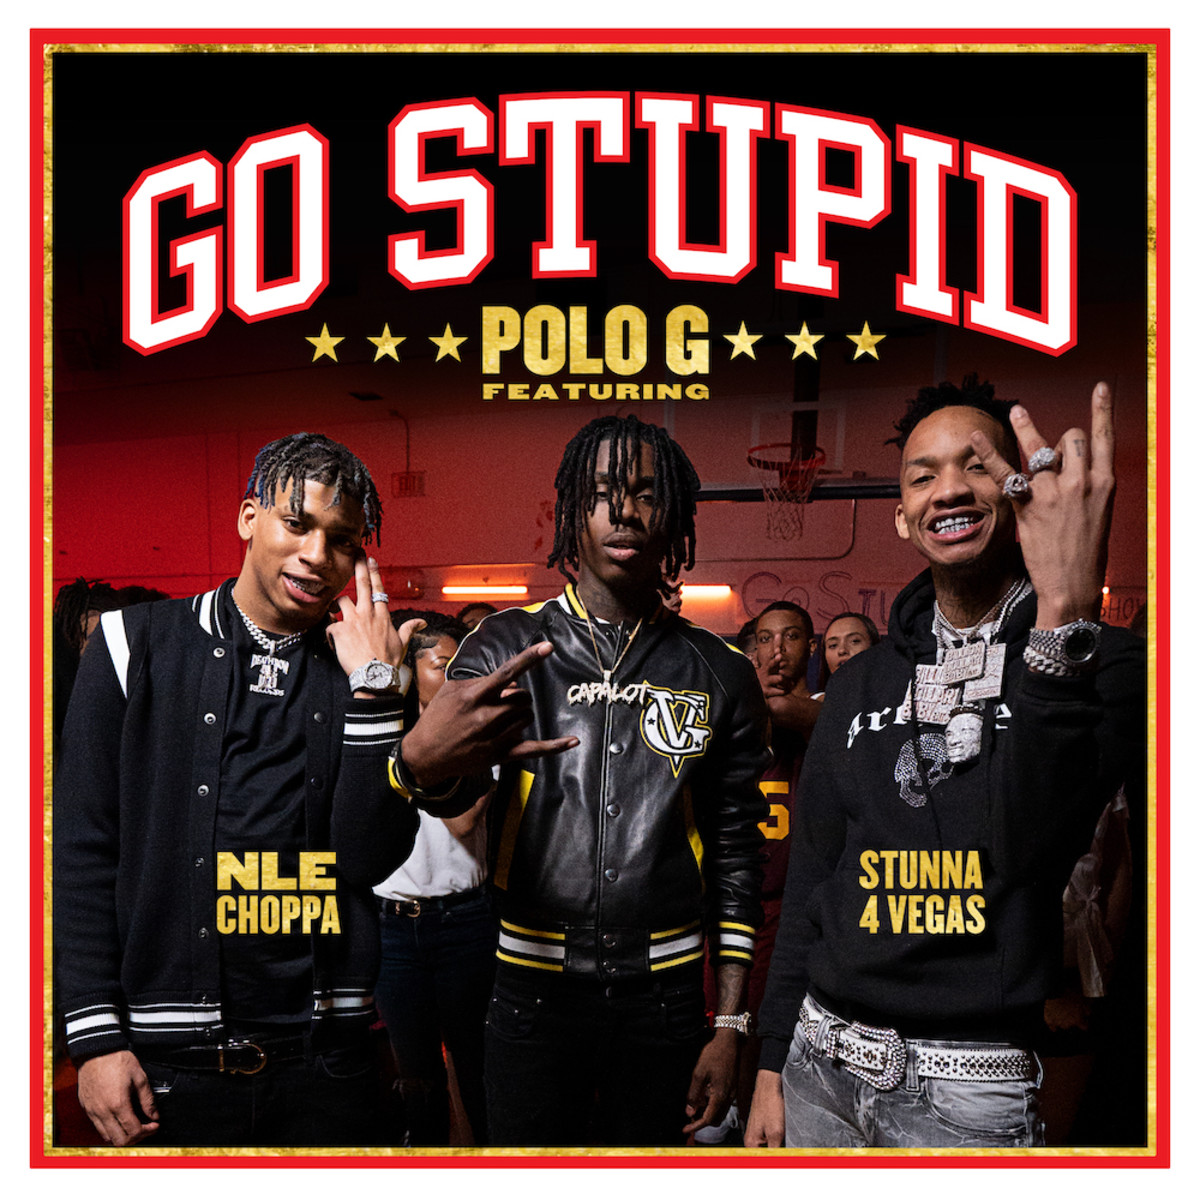 """Watch Polo G's New Video for """"Go Stupid"""" f/ NLE Choppa and Stunna 4 Vegas"""